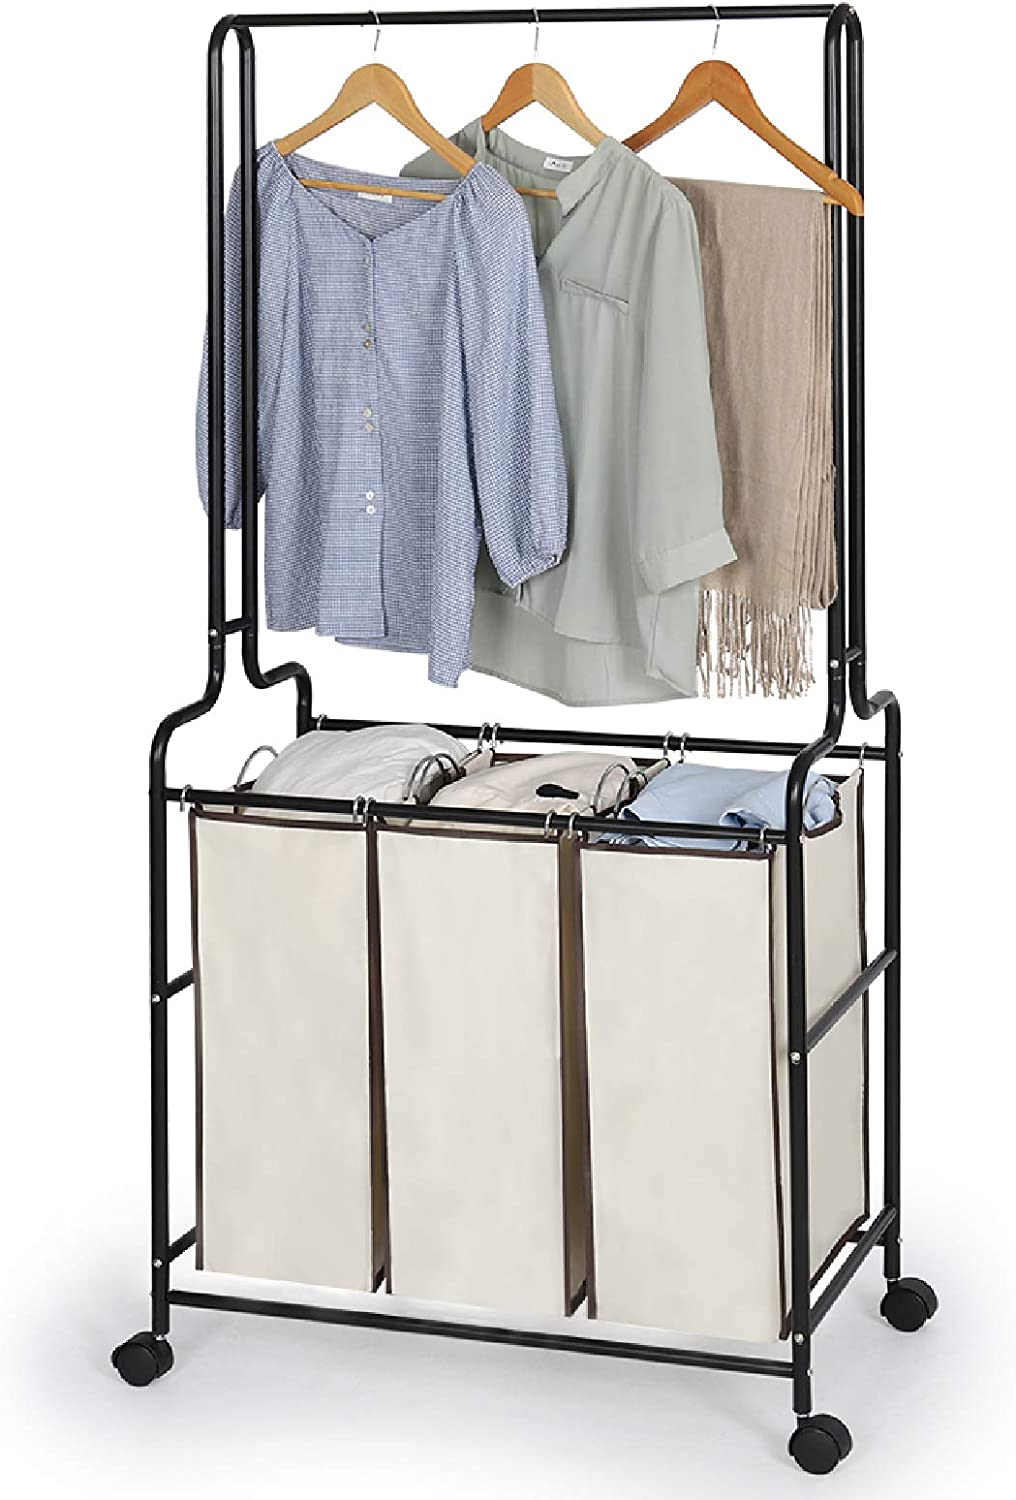 Laundry Sorter Cart Large Capacity Laundry Sorter with Hanging Bar Heavy-duty with Wheels and Removable 3 Bags Sturdy Laundry Hamper Sorter Cart with Brake Carters